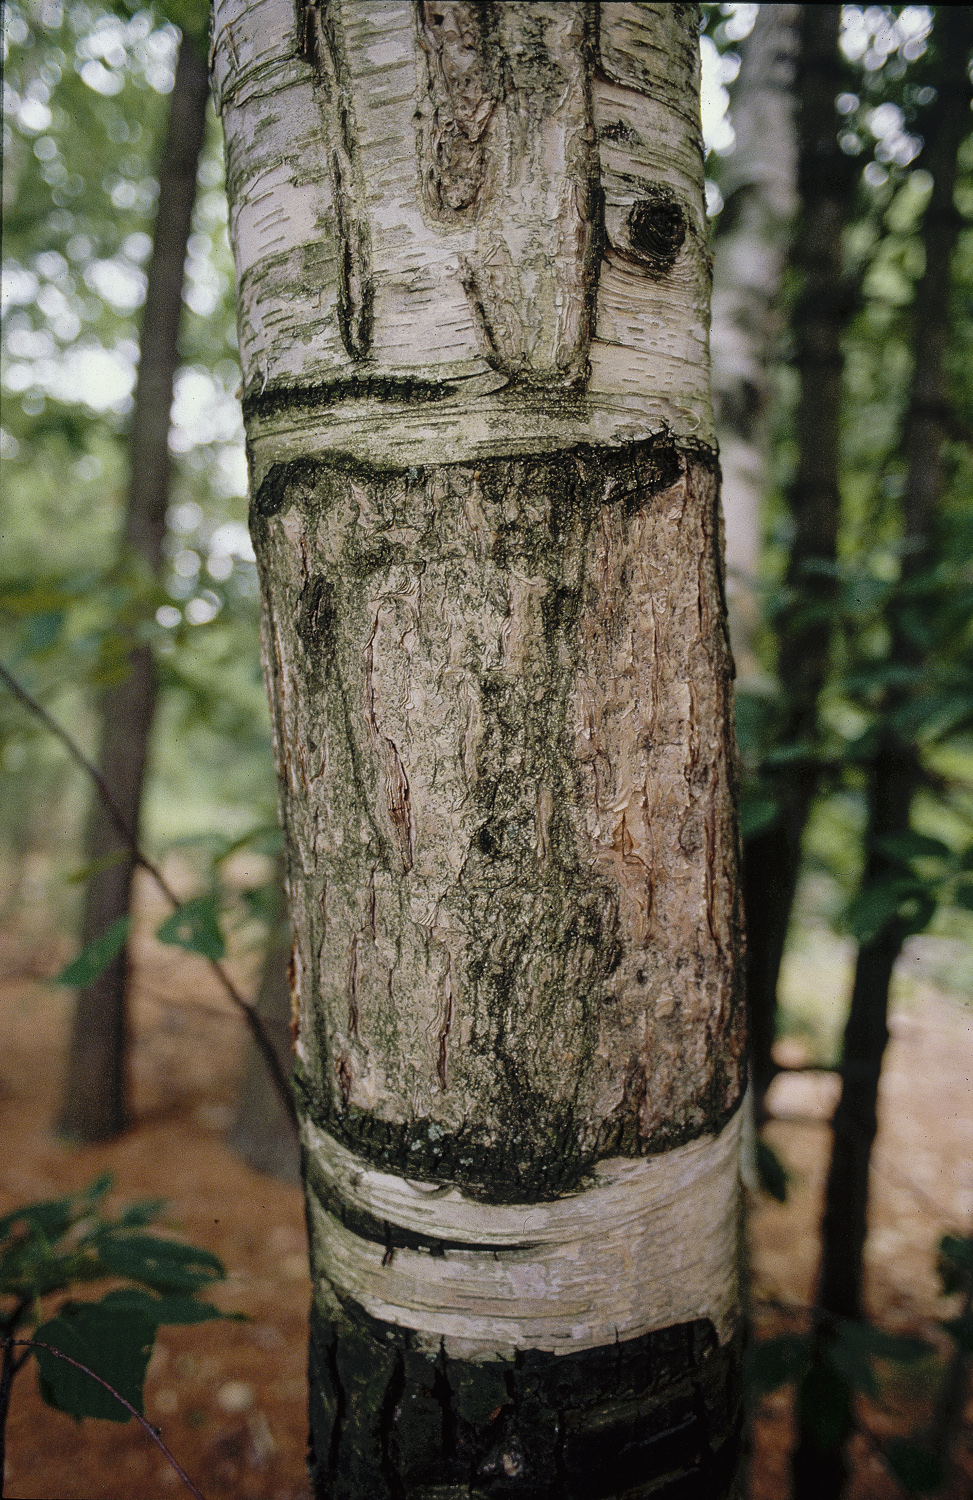 Tree - Walden Pond,1992